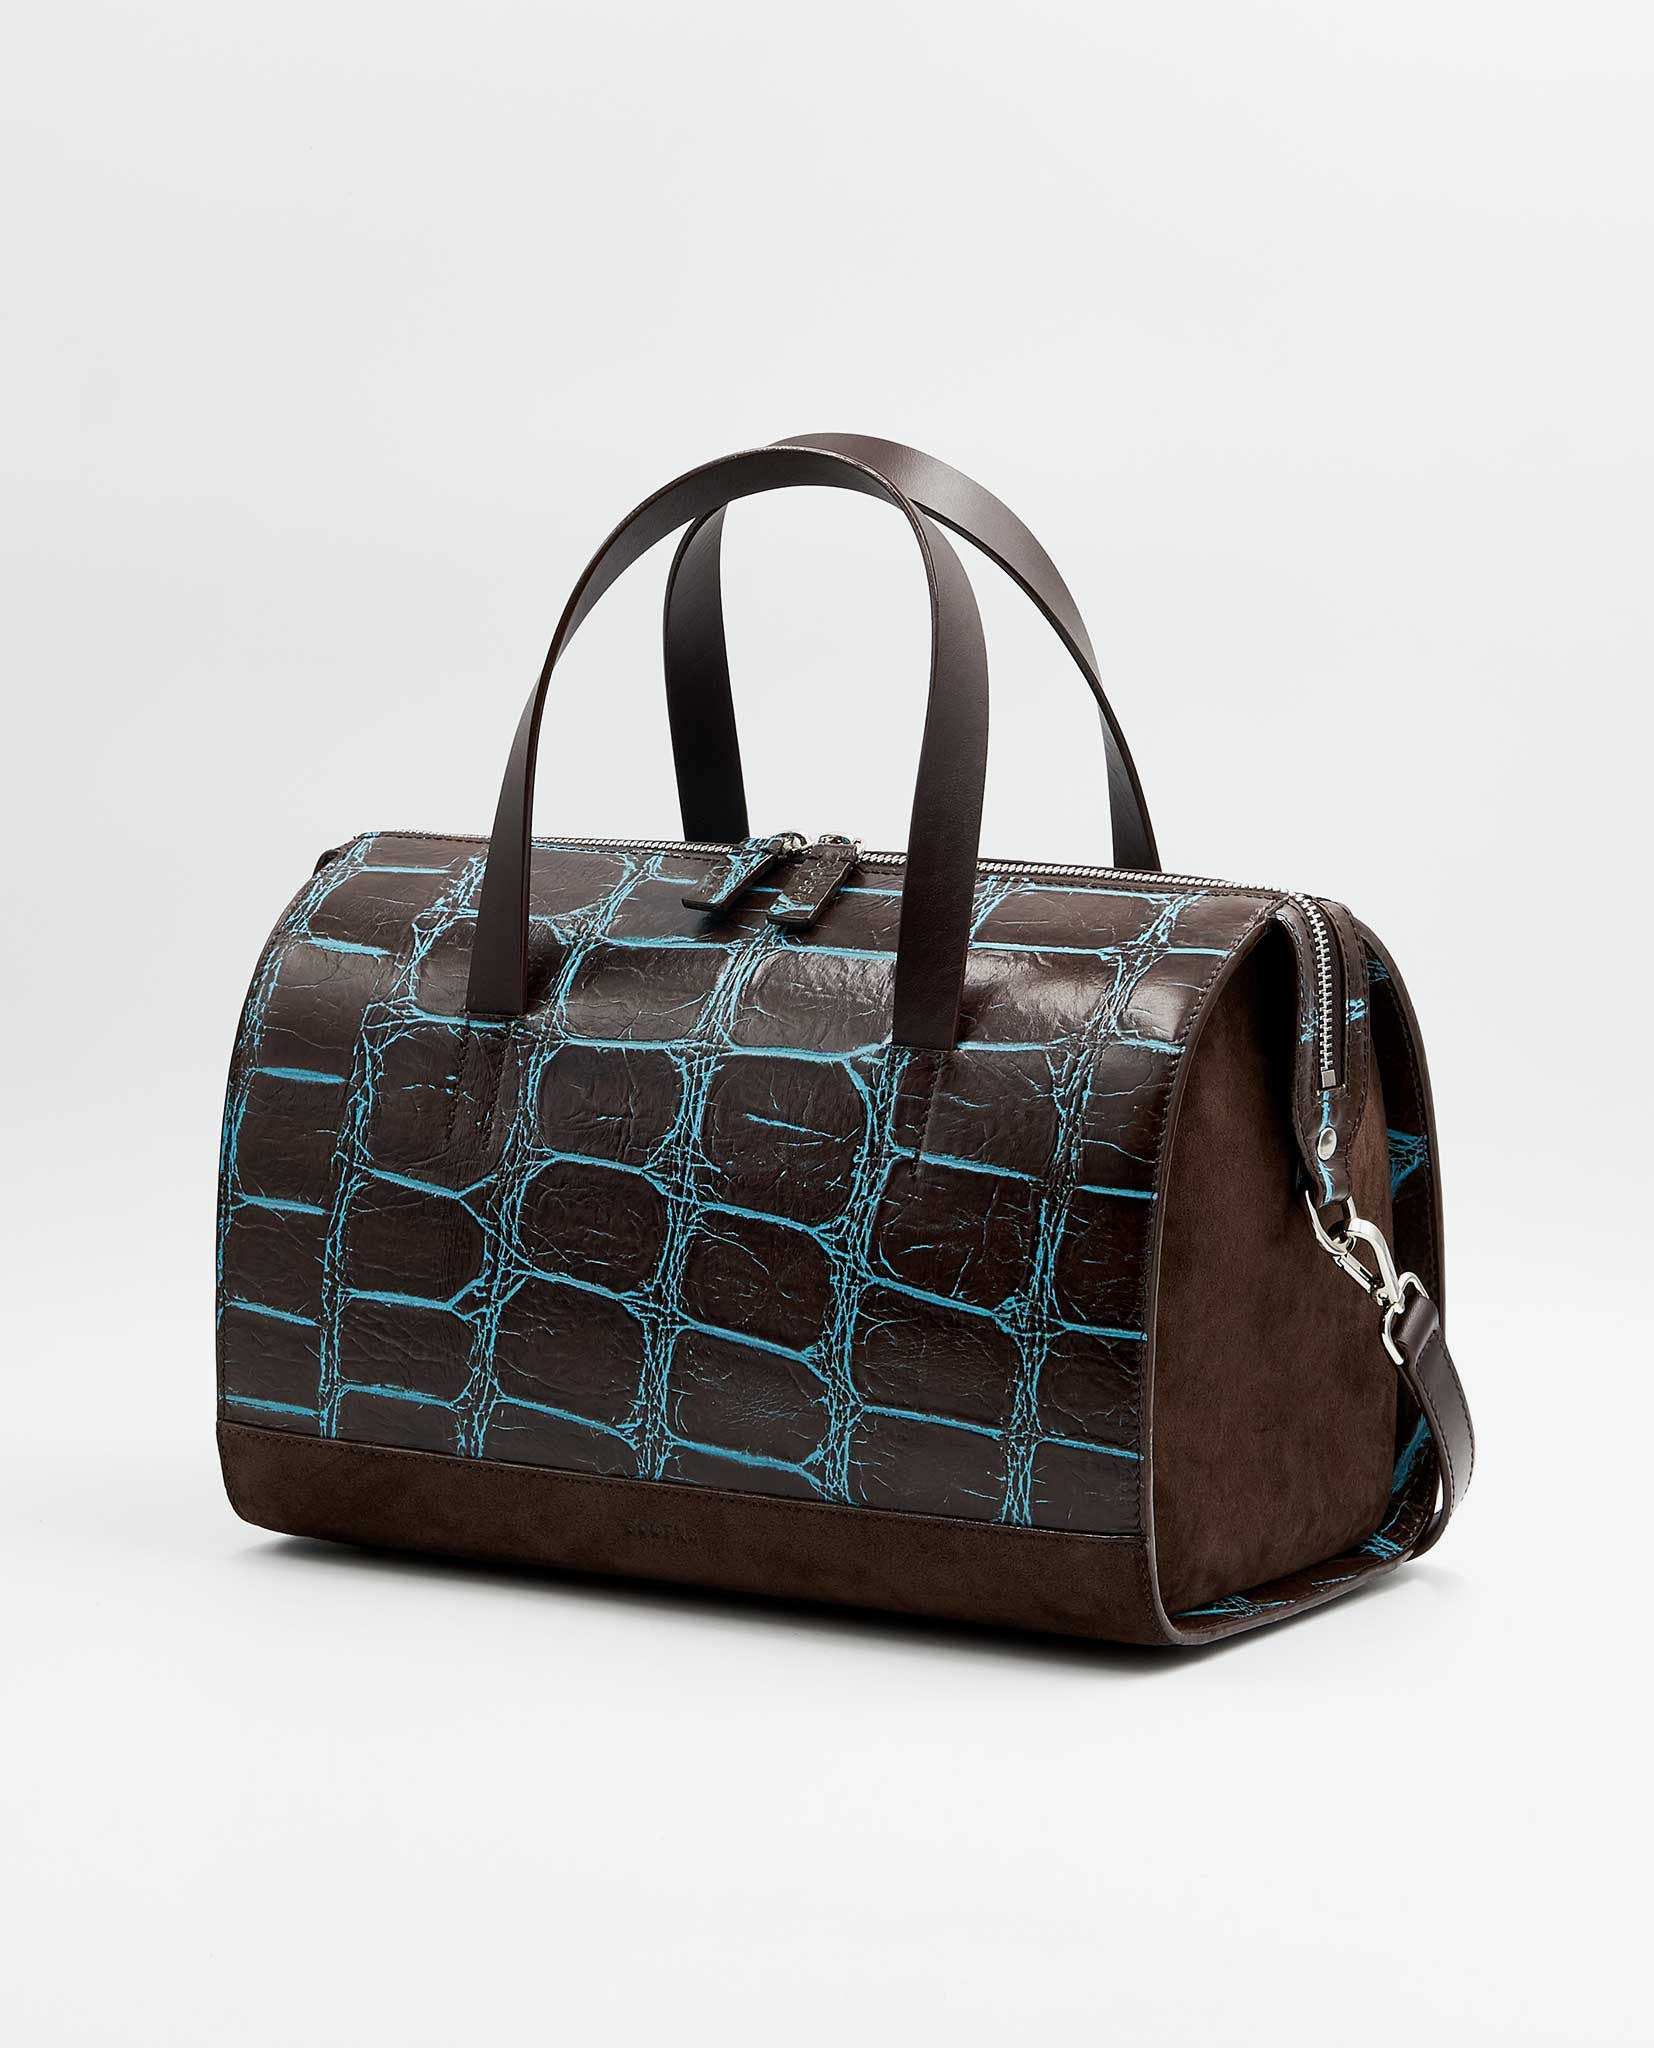 SOOFRE-Berlin-unique-Bowler-Bag-croco-brown-brown-SIDES